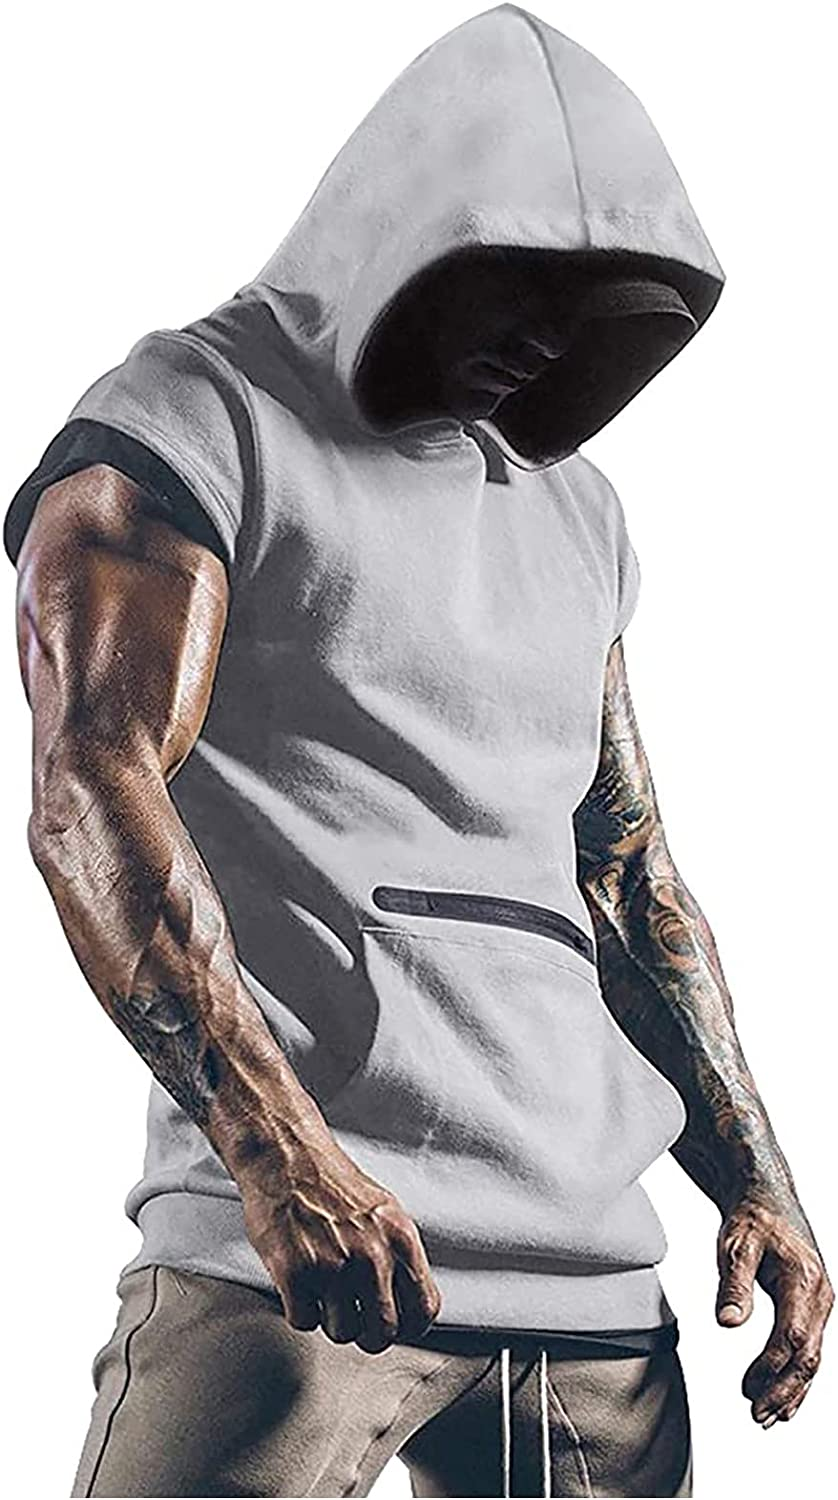 Mens Workout Tank Tops with Hood Sleeveless Cut Off Gym T-Shirt Muscles Vest Tees with Athletic Pockets